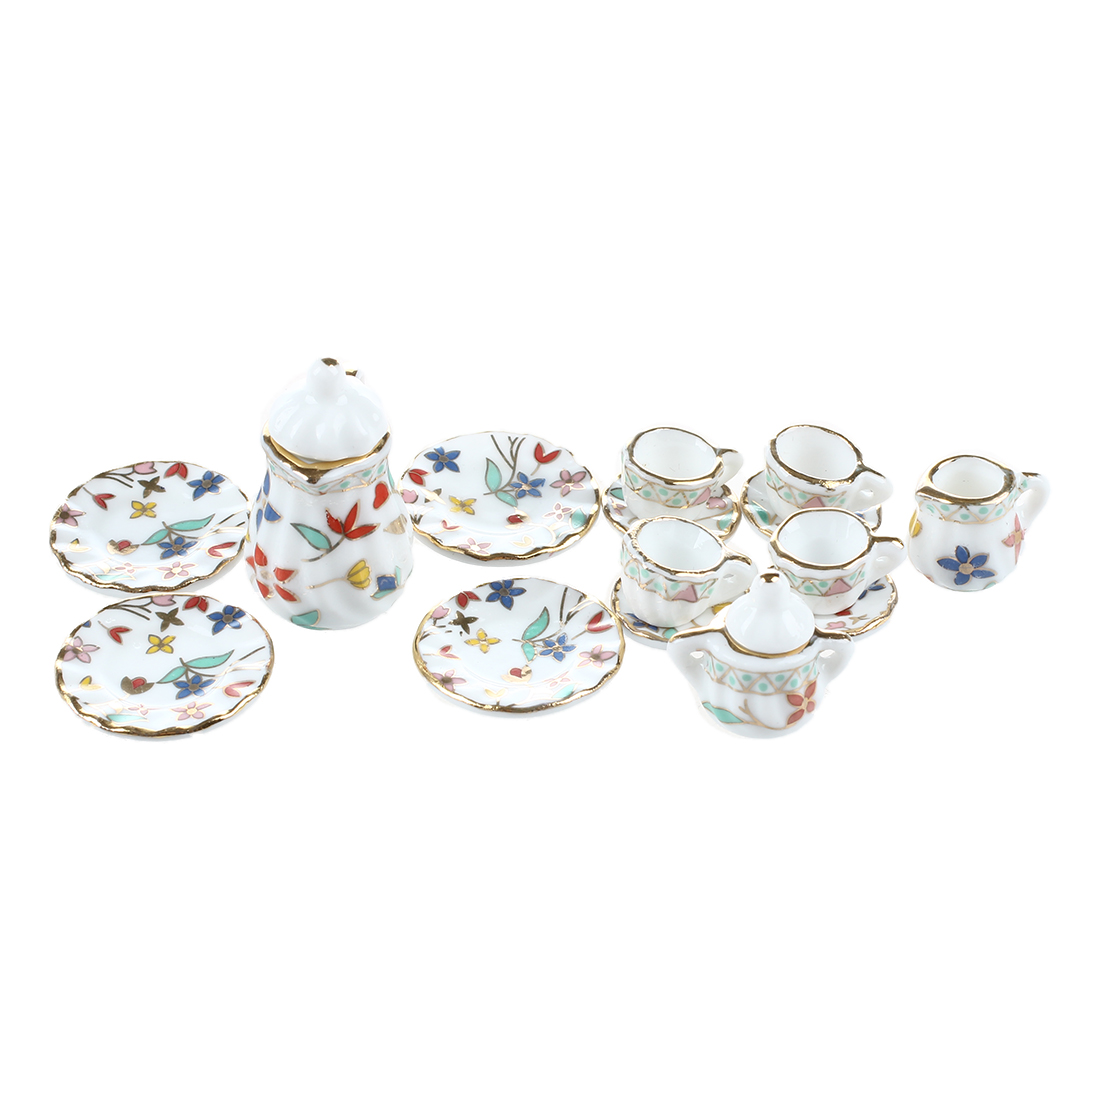 ABWE 15 Piece Miniature Dollhouse Dinnerware Porcelain Tea Set Tableware Cup Plate Colorful Floral Print